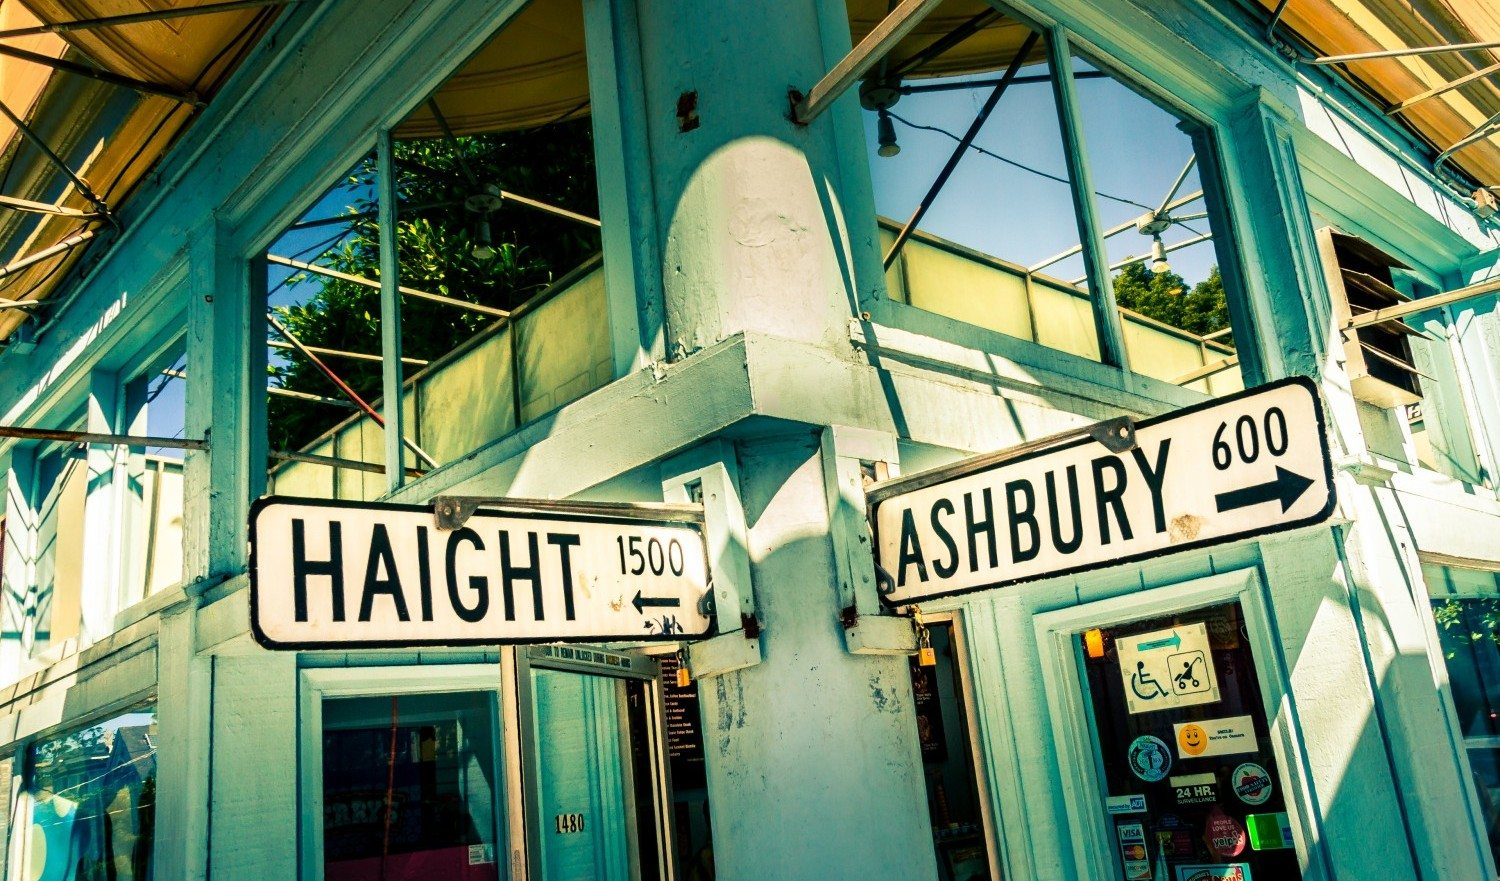 San Francisco, United States - September 21, 2015: Haight Ashbury street sign junction corner in San Francisco, California, USA